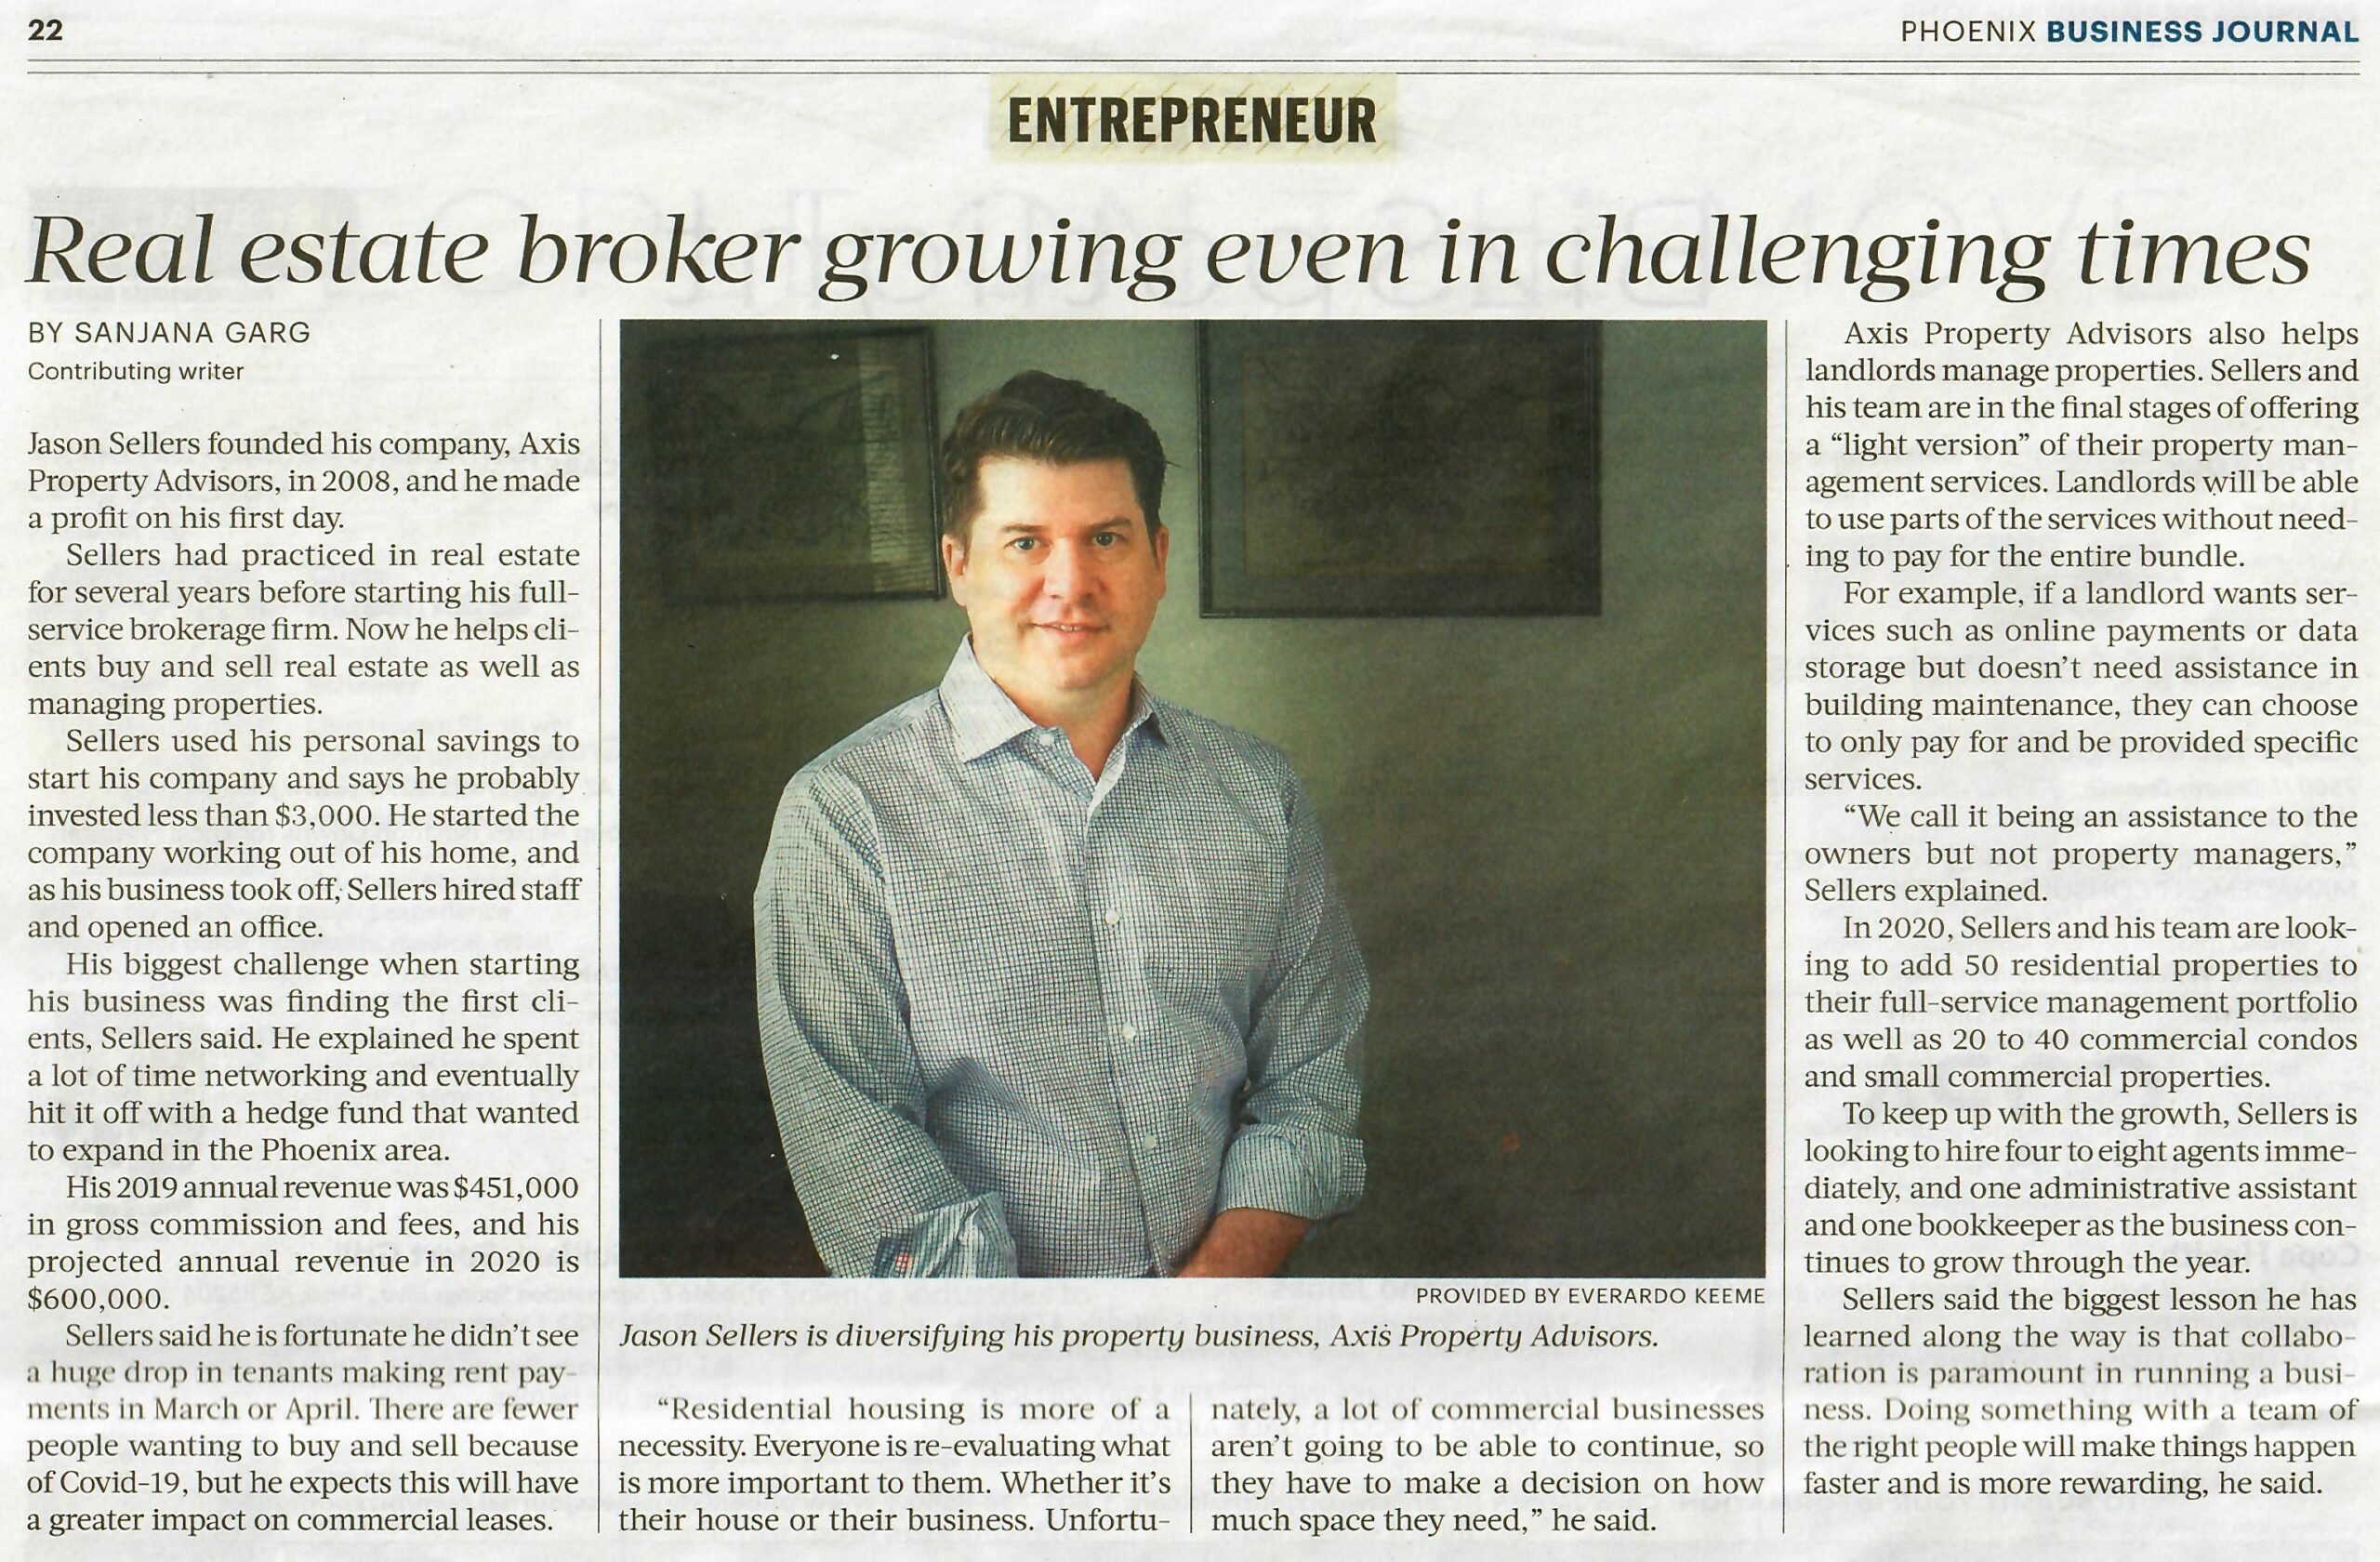 Real estate broker growing even in challenging times